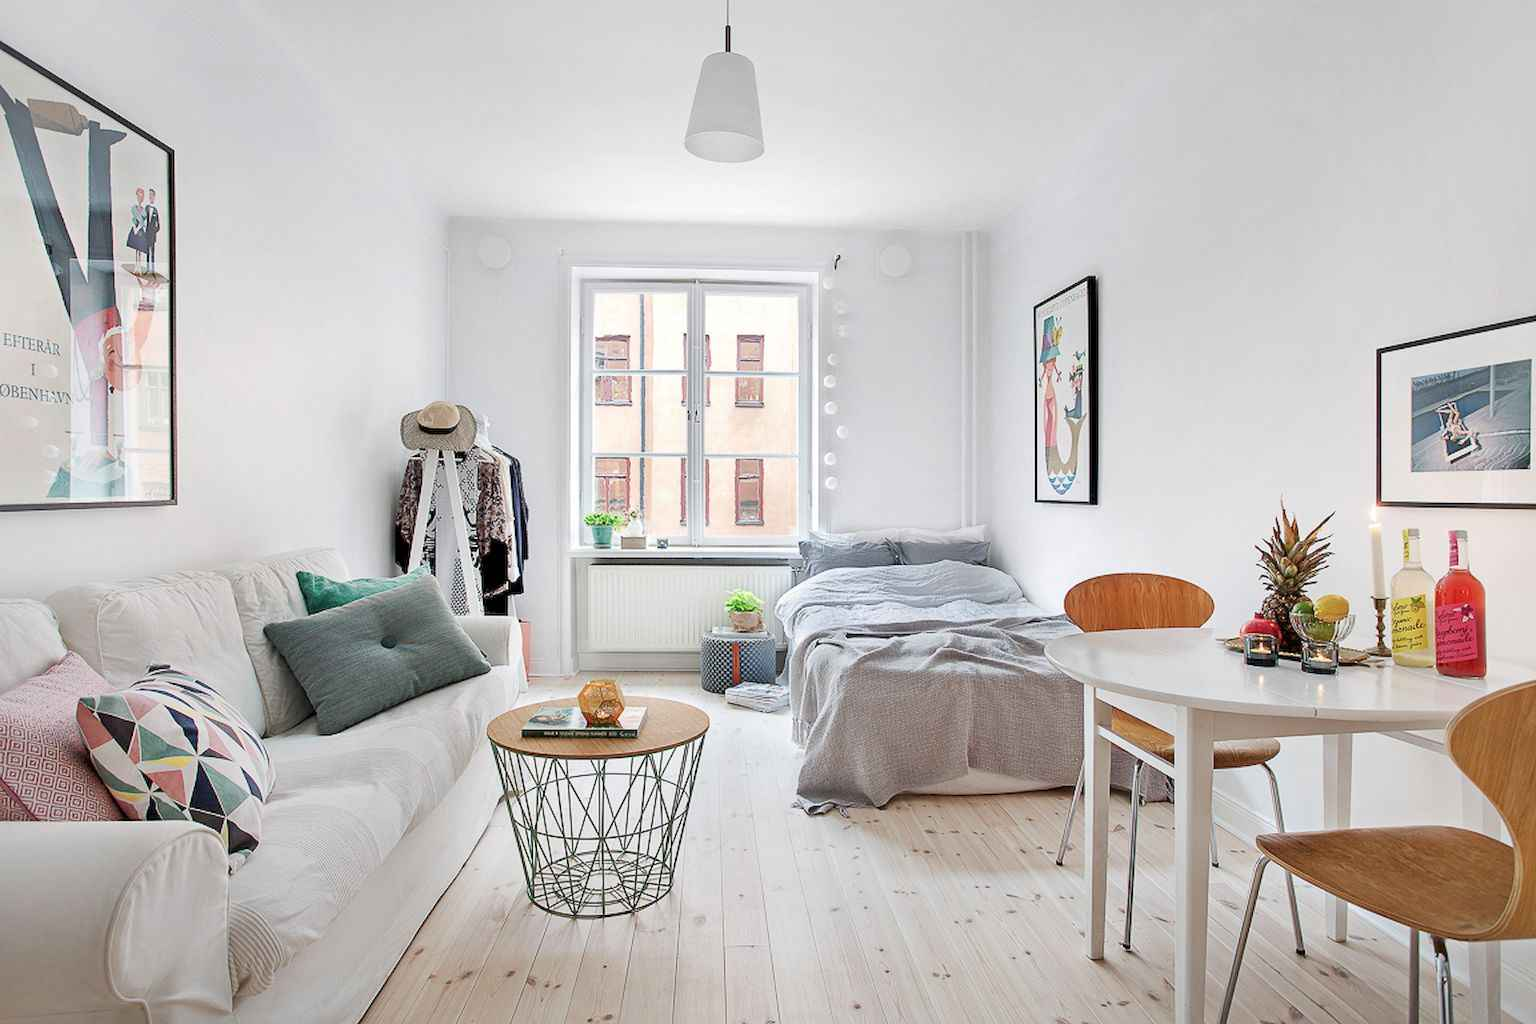 Small apartment studio decorating ideas on a budget (8)